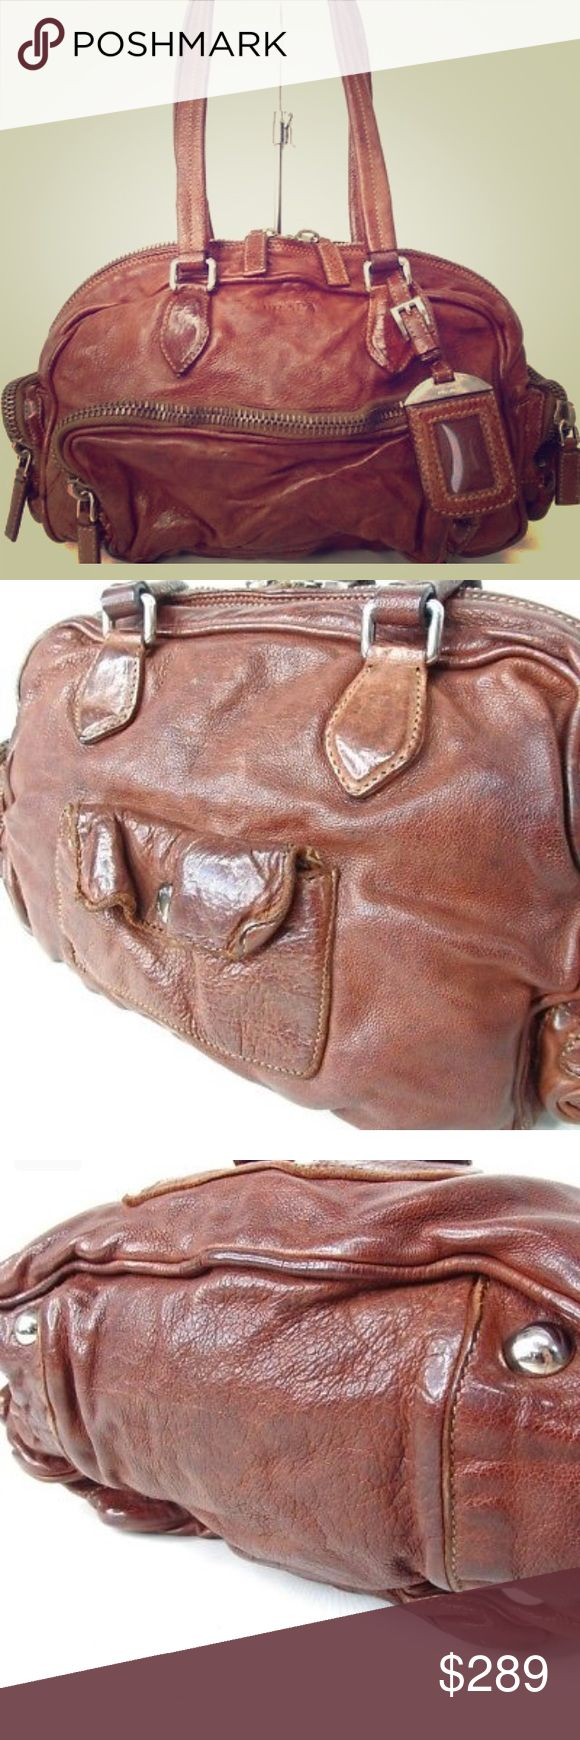 """PRADA leather satchel Guaranteed authentic preowned brown leather PRADA satchel shoulder bag.   Tons of pockets to keep organized.  Overall in good condition, some wear from normal use mostly on corner.  Please see photos before purchasing.   Any offers please use offer option.  Measures 11.75x7x4""""    Bundle to save Prada Bags"""